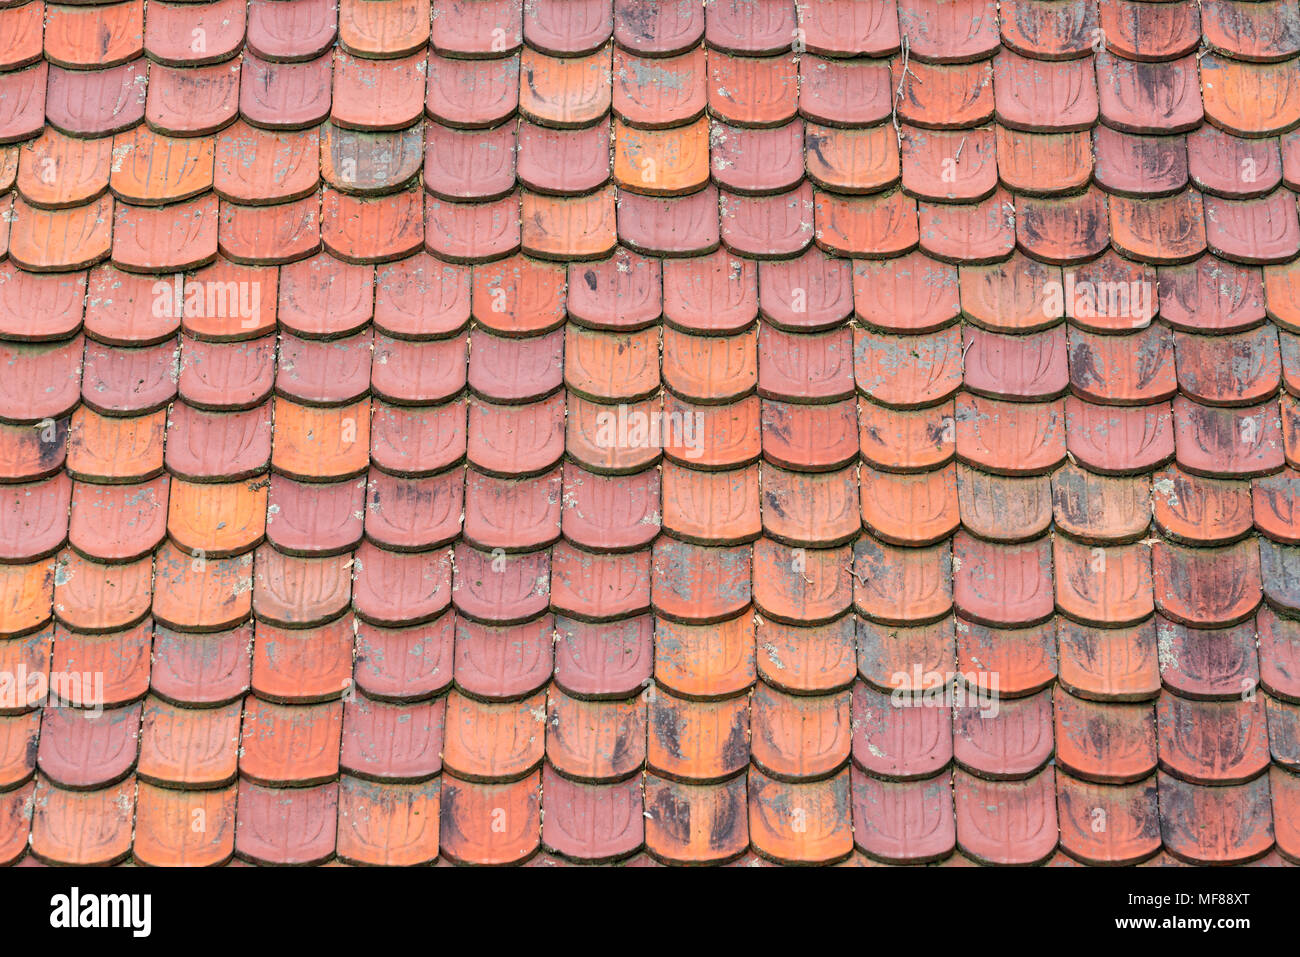 Terracotta clay roof shingles background Stock Photo: 181506160 - Alamy